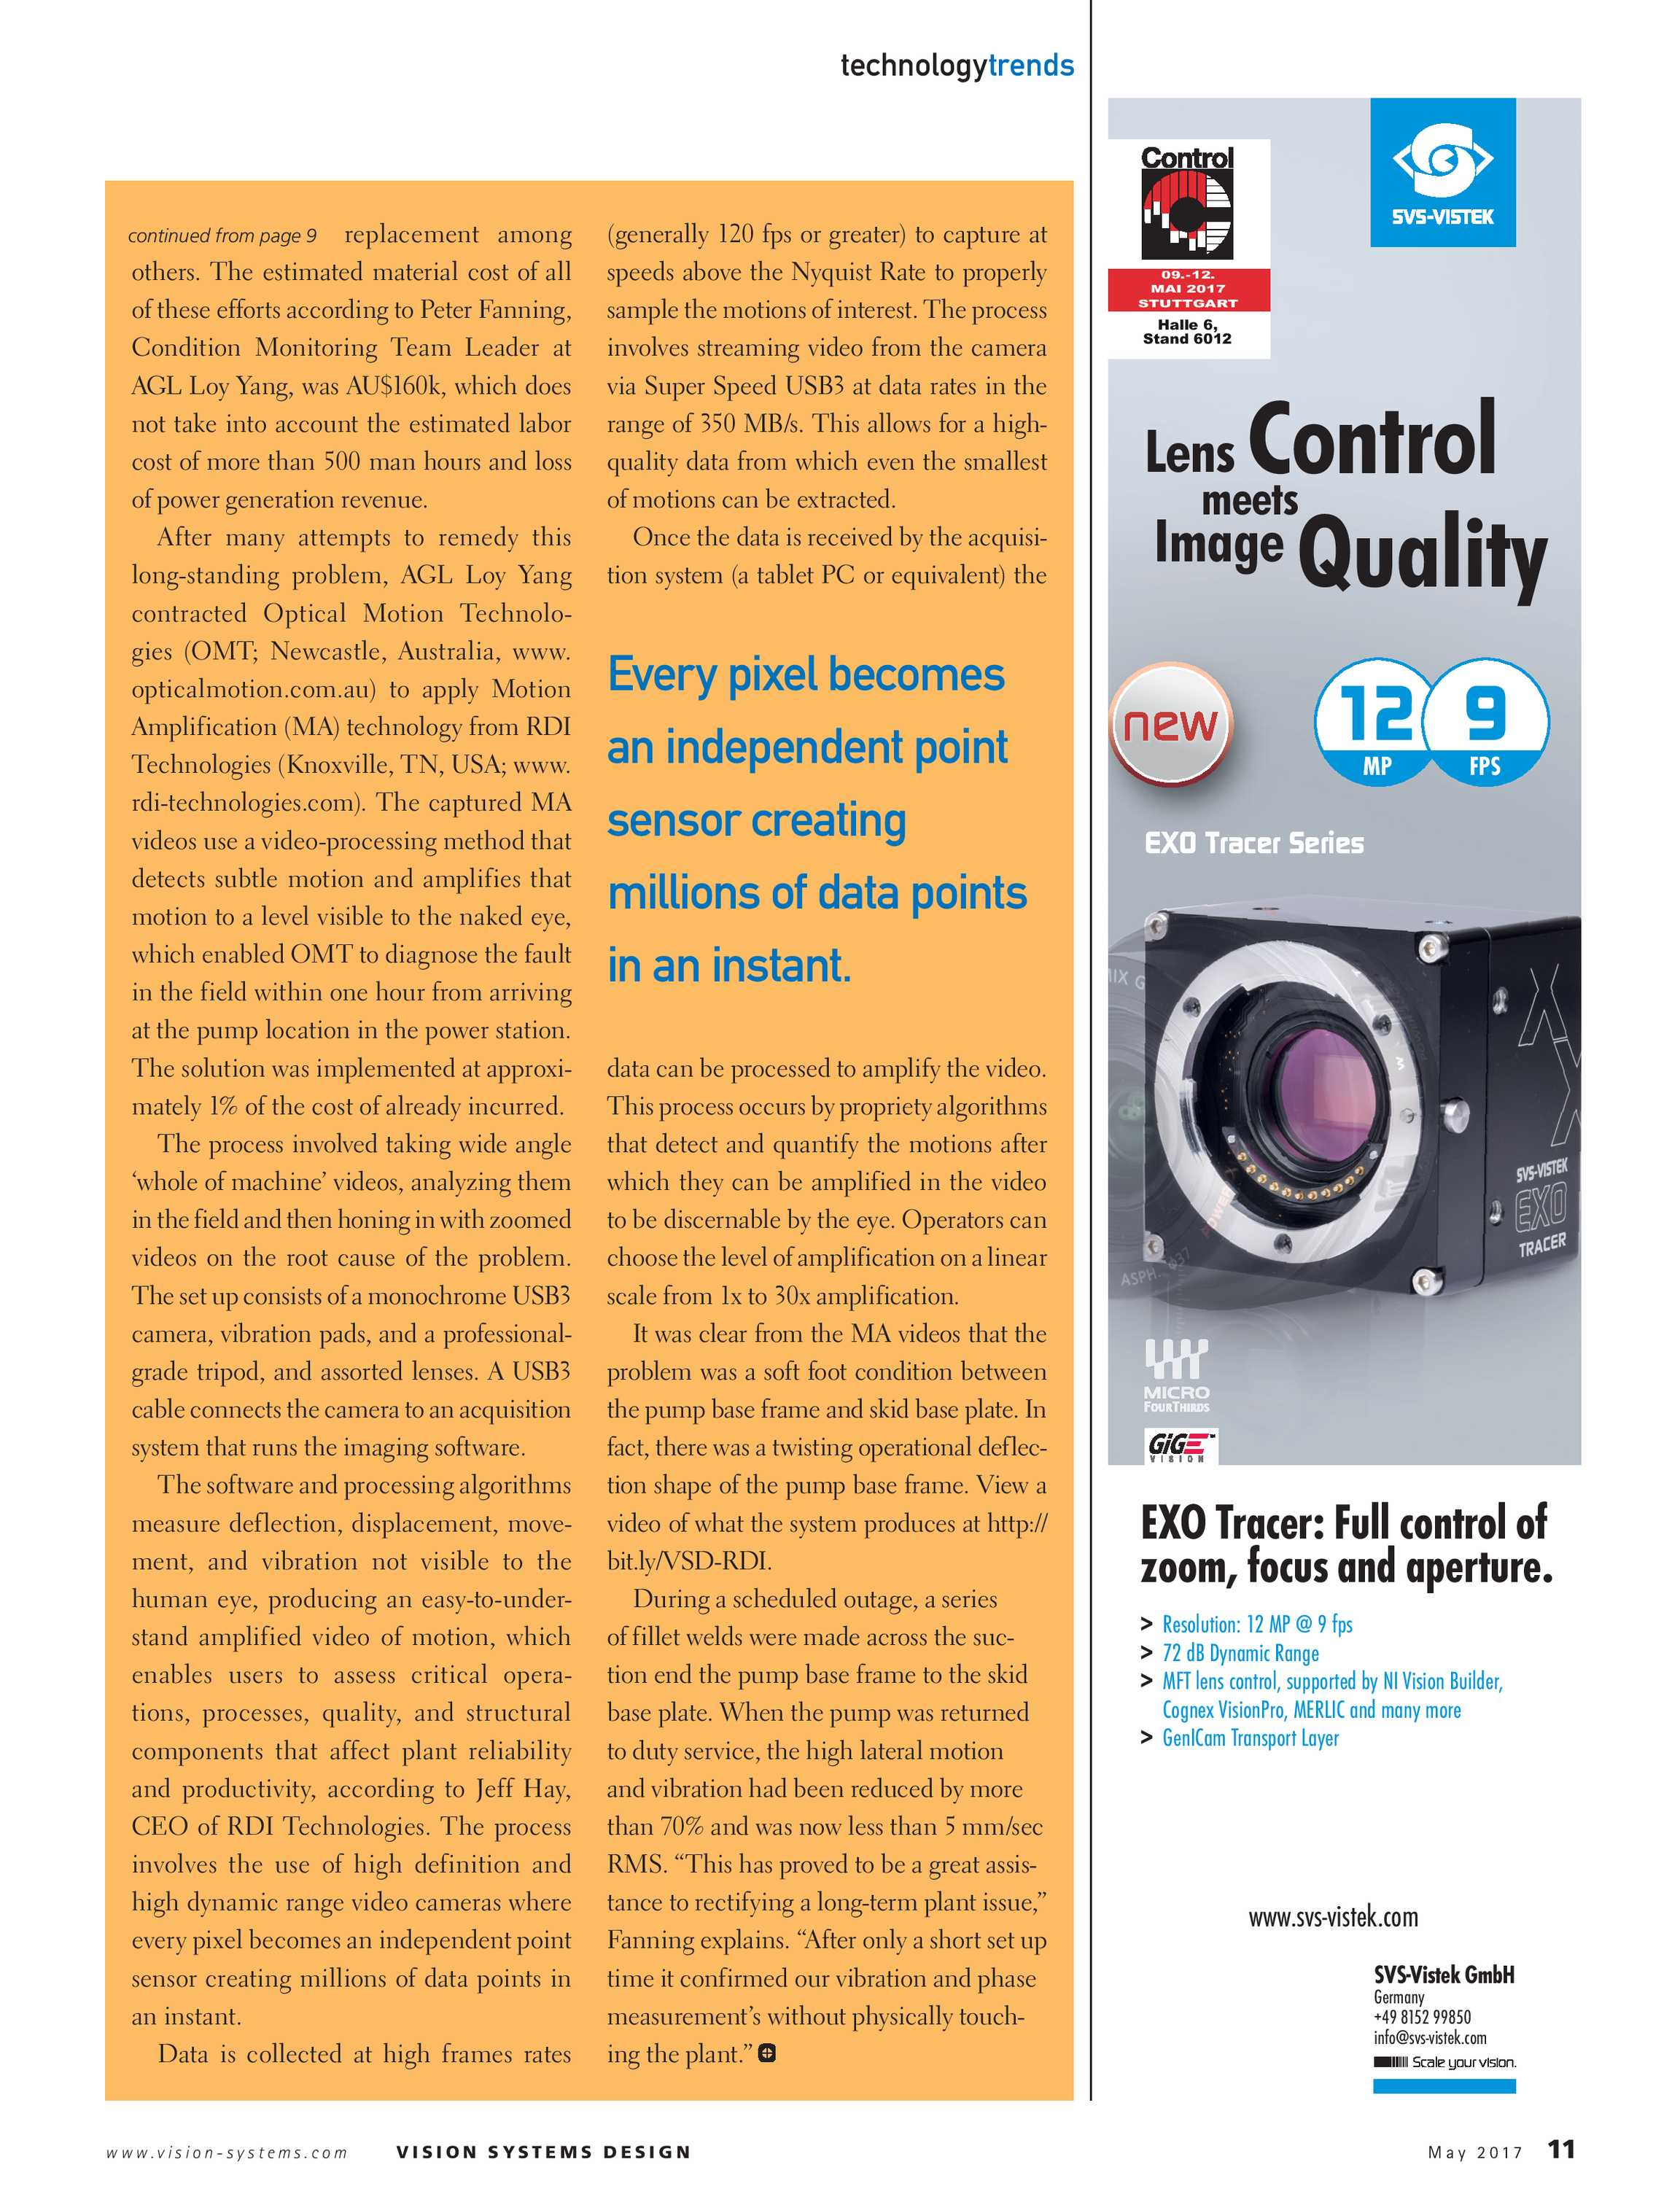 Vision Systems - May 2017 - page 11